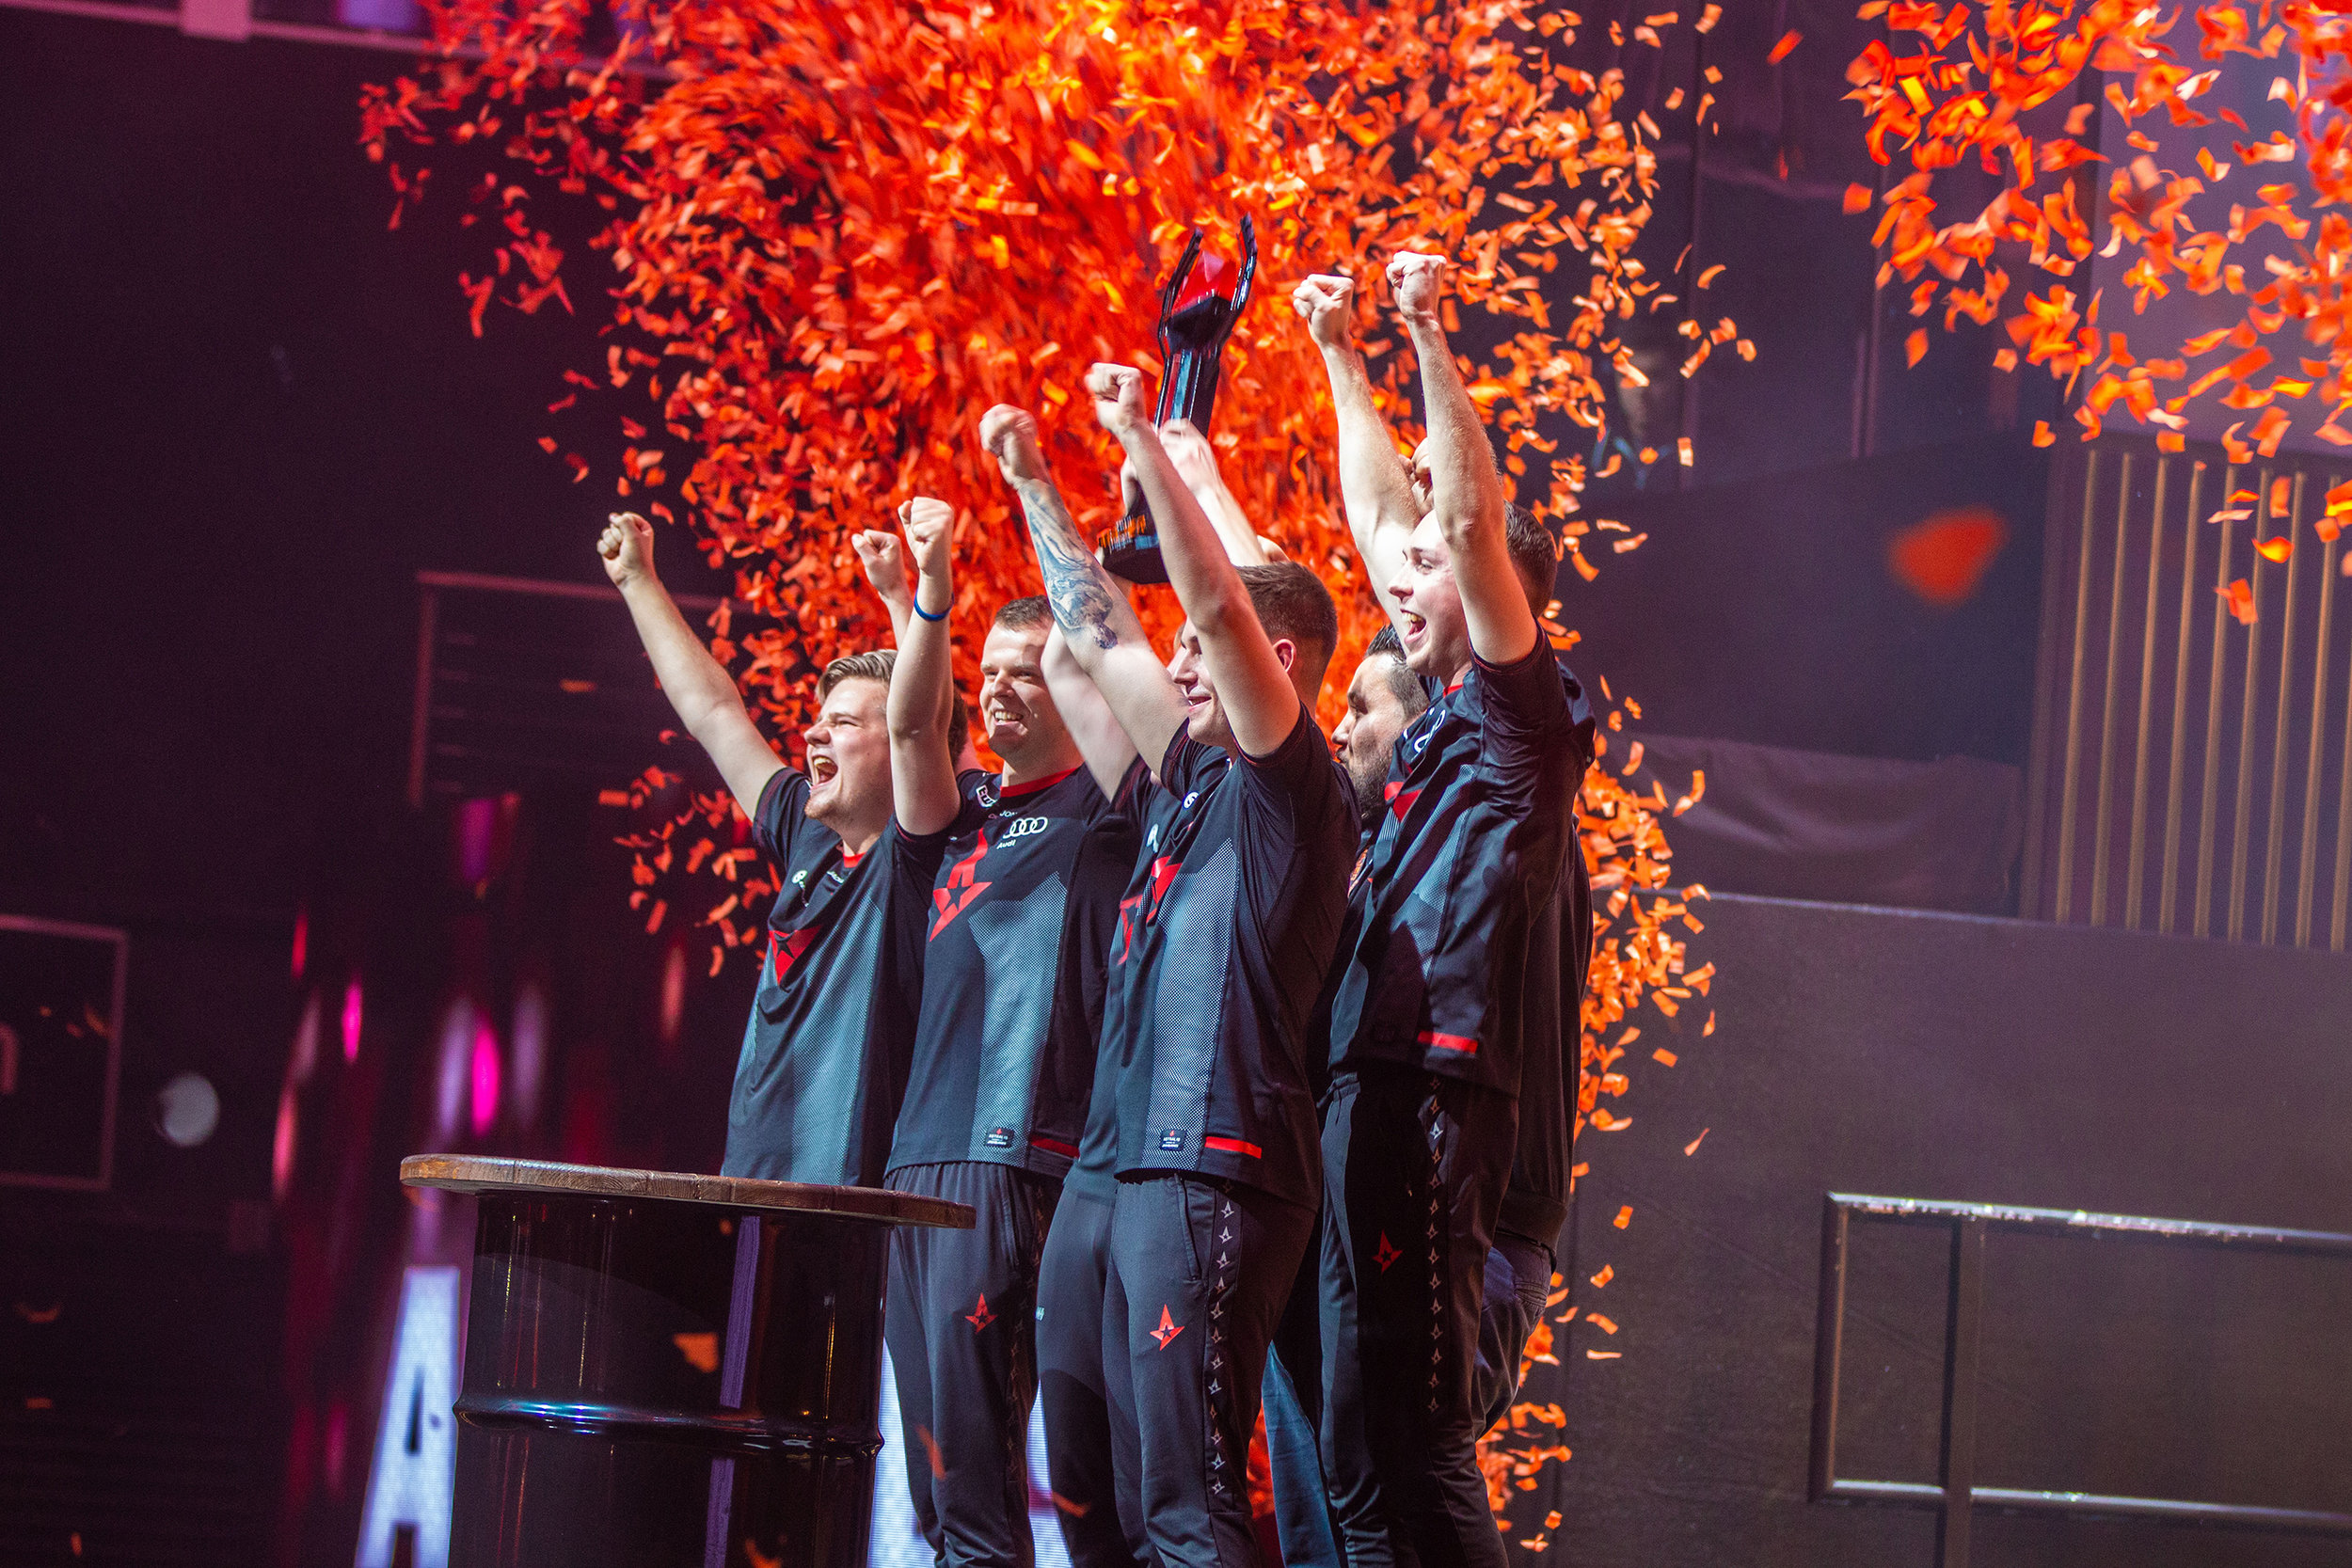 Team Astralis hoisting trophy and cheering with crowd after their win over Navi. FaceIT Major at The SSE Arena, Wembley on September 23, 2018 in London, England.  Photo by Kieran Gibbs / ESPAT Media